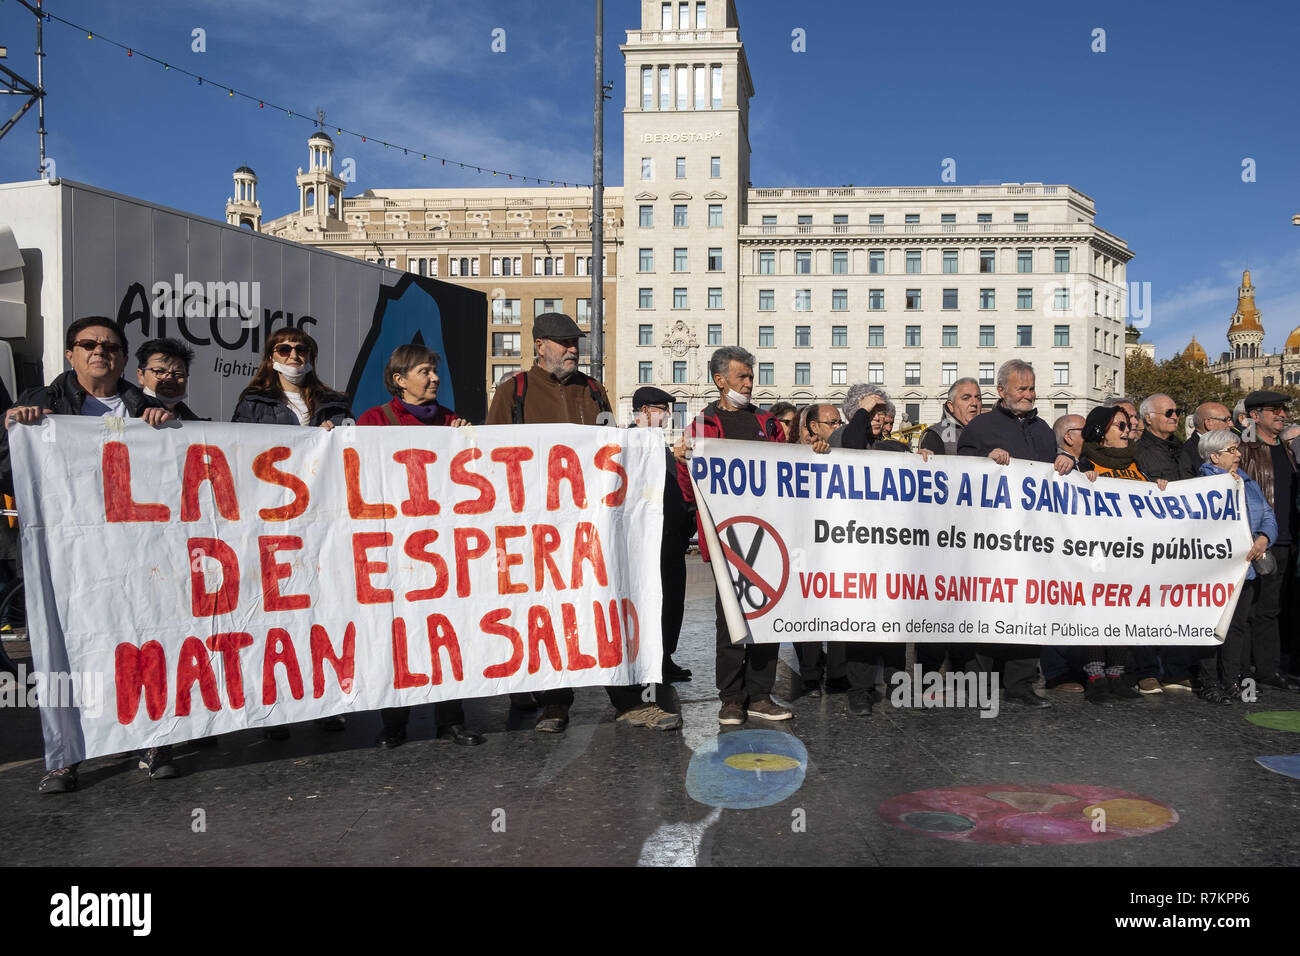 Barcelona, Catalonia, Spain. 10th December, 2018. Protesters are seen holding banners against waiting lists of public health during the protest.Called by Marea Blanca Catalunya within the state fight against the waiting lists and the commercialization of health, the protesters have toured the center of Barcelona to finish in front of the Generalitat of Catalonia. Credit: Paco Freire/SOPA Images/ZUMA Wire/Alamy Live News - Stock Image